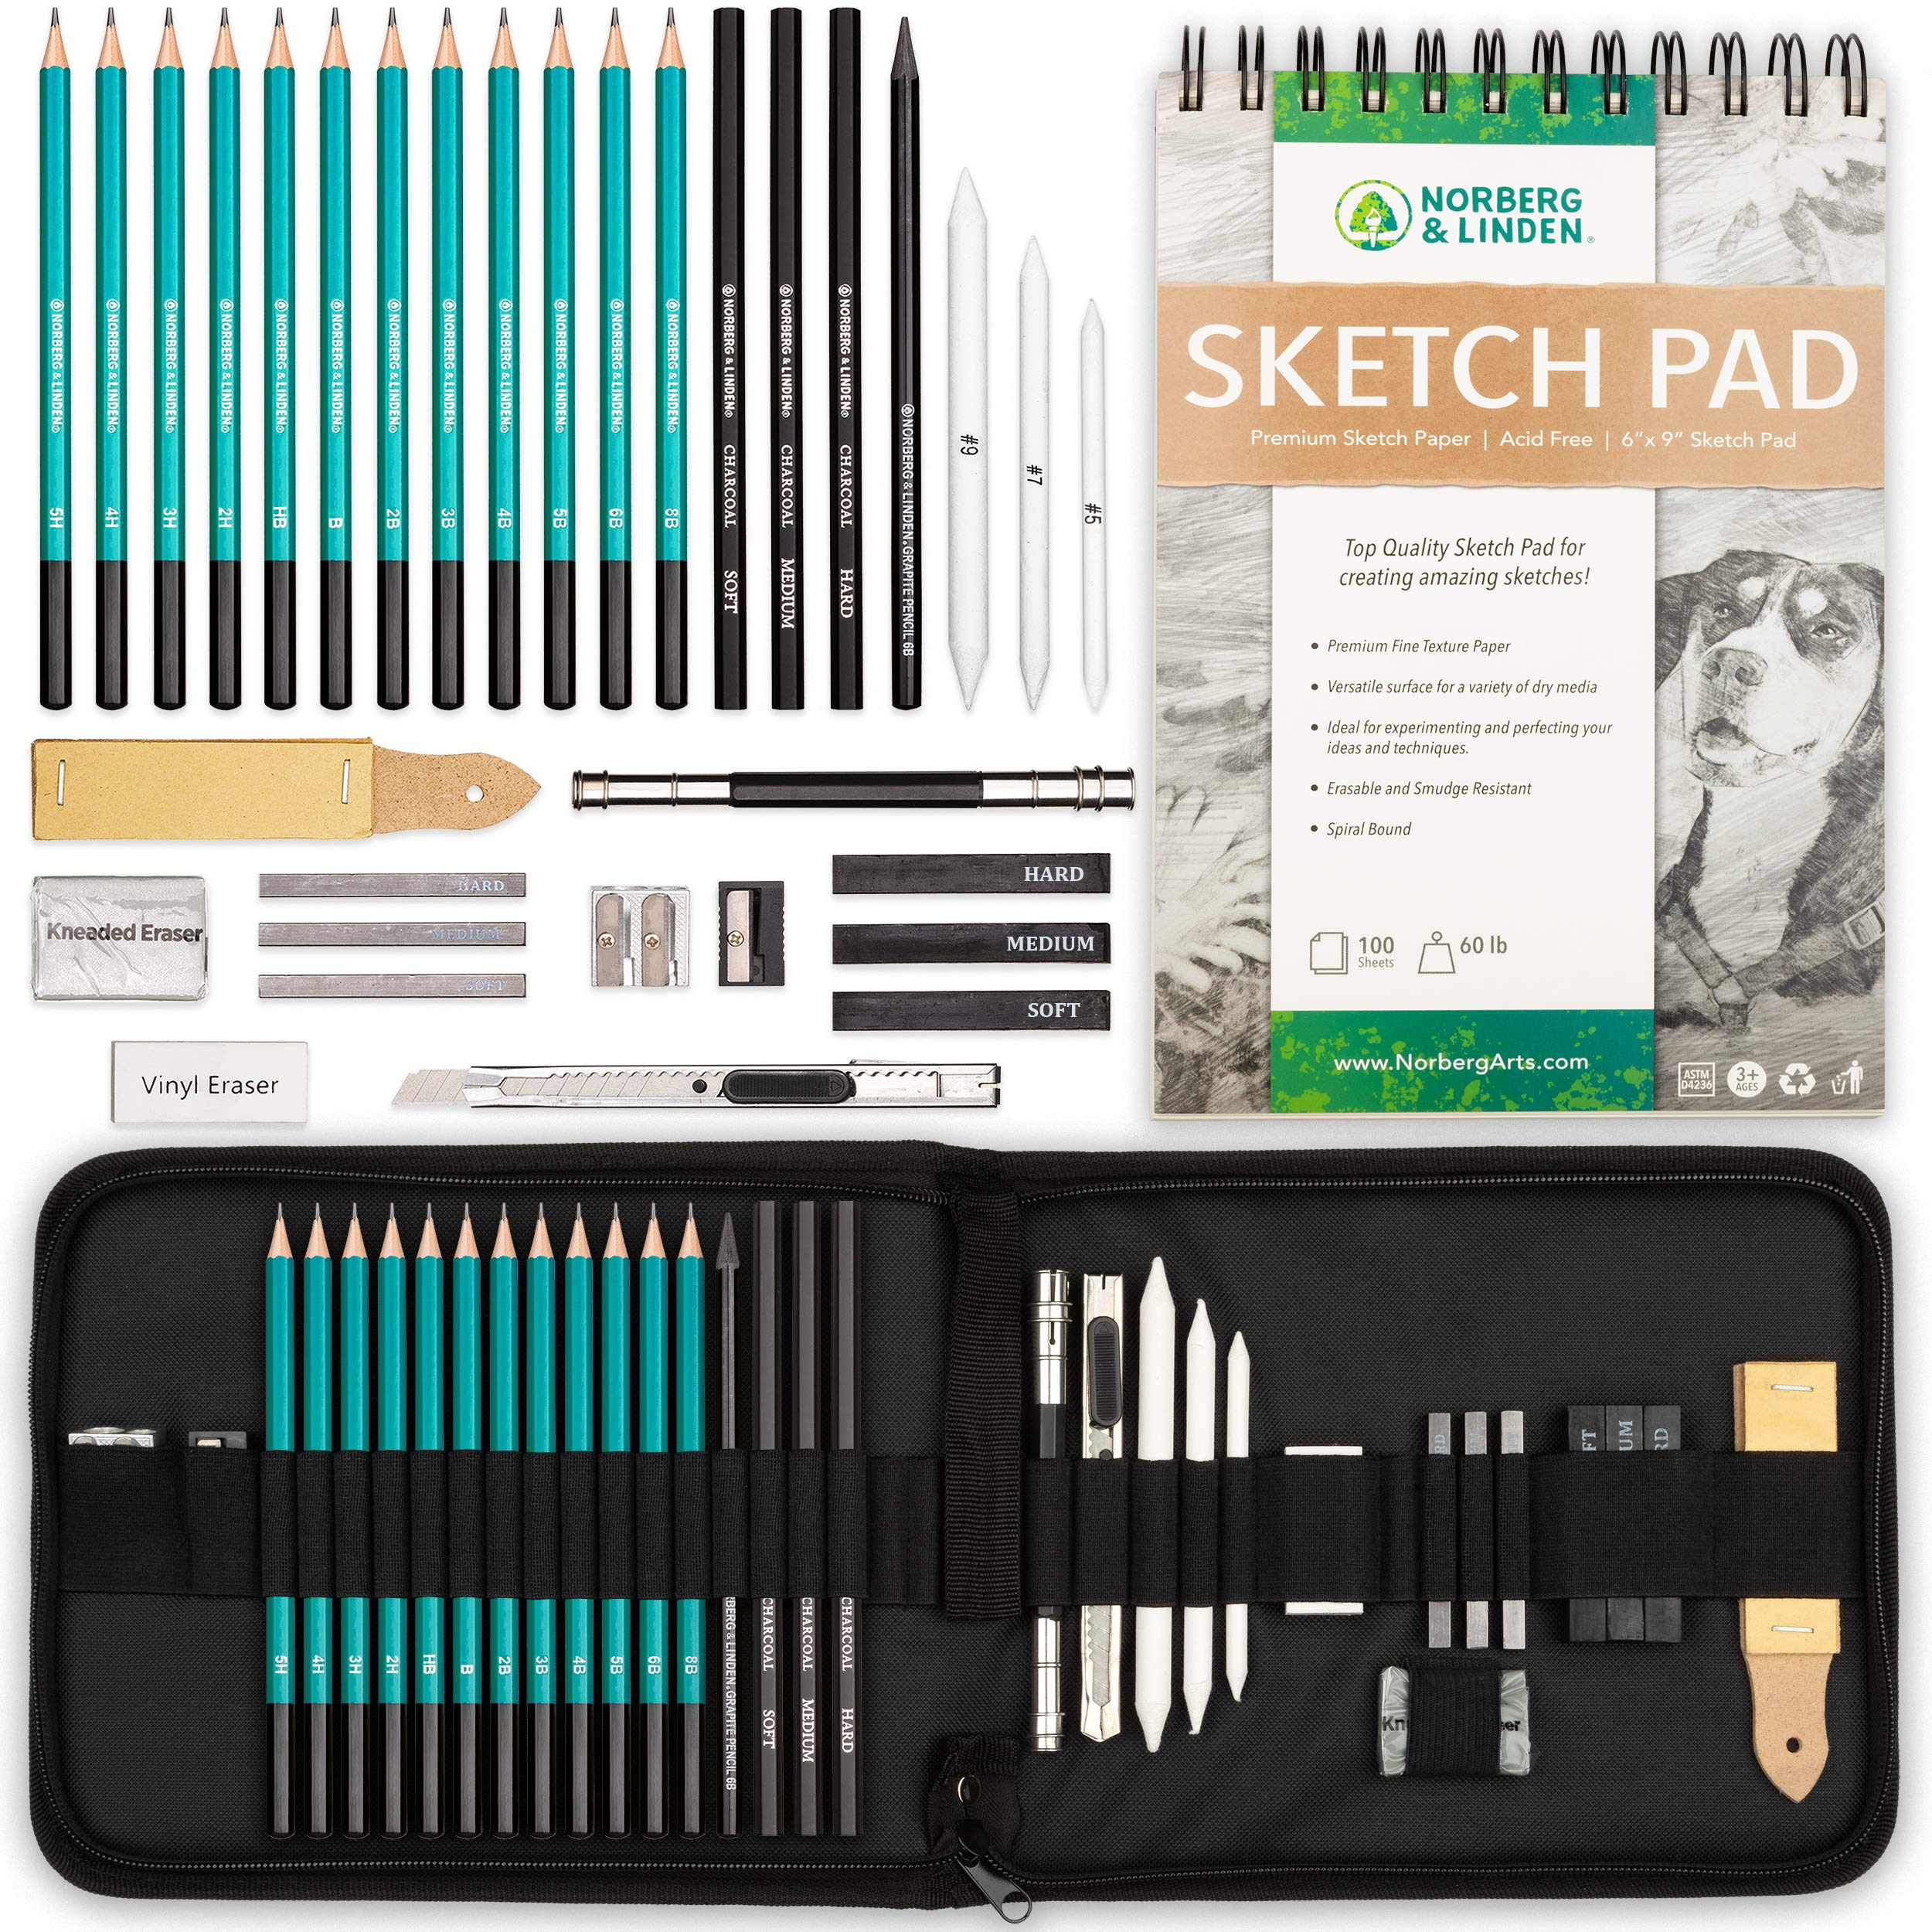 Norberg & Linden XL Drawing Set - Sketching, Graphite and Charcoal Pencils. Includes 100 Page Drawing Pad, Kneaded Eraser, Blending Stump. Art Kit and Supplies for Kids, Teens and Adults.